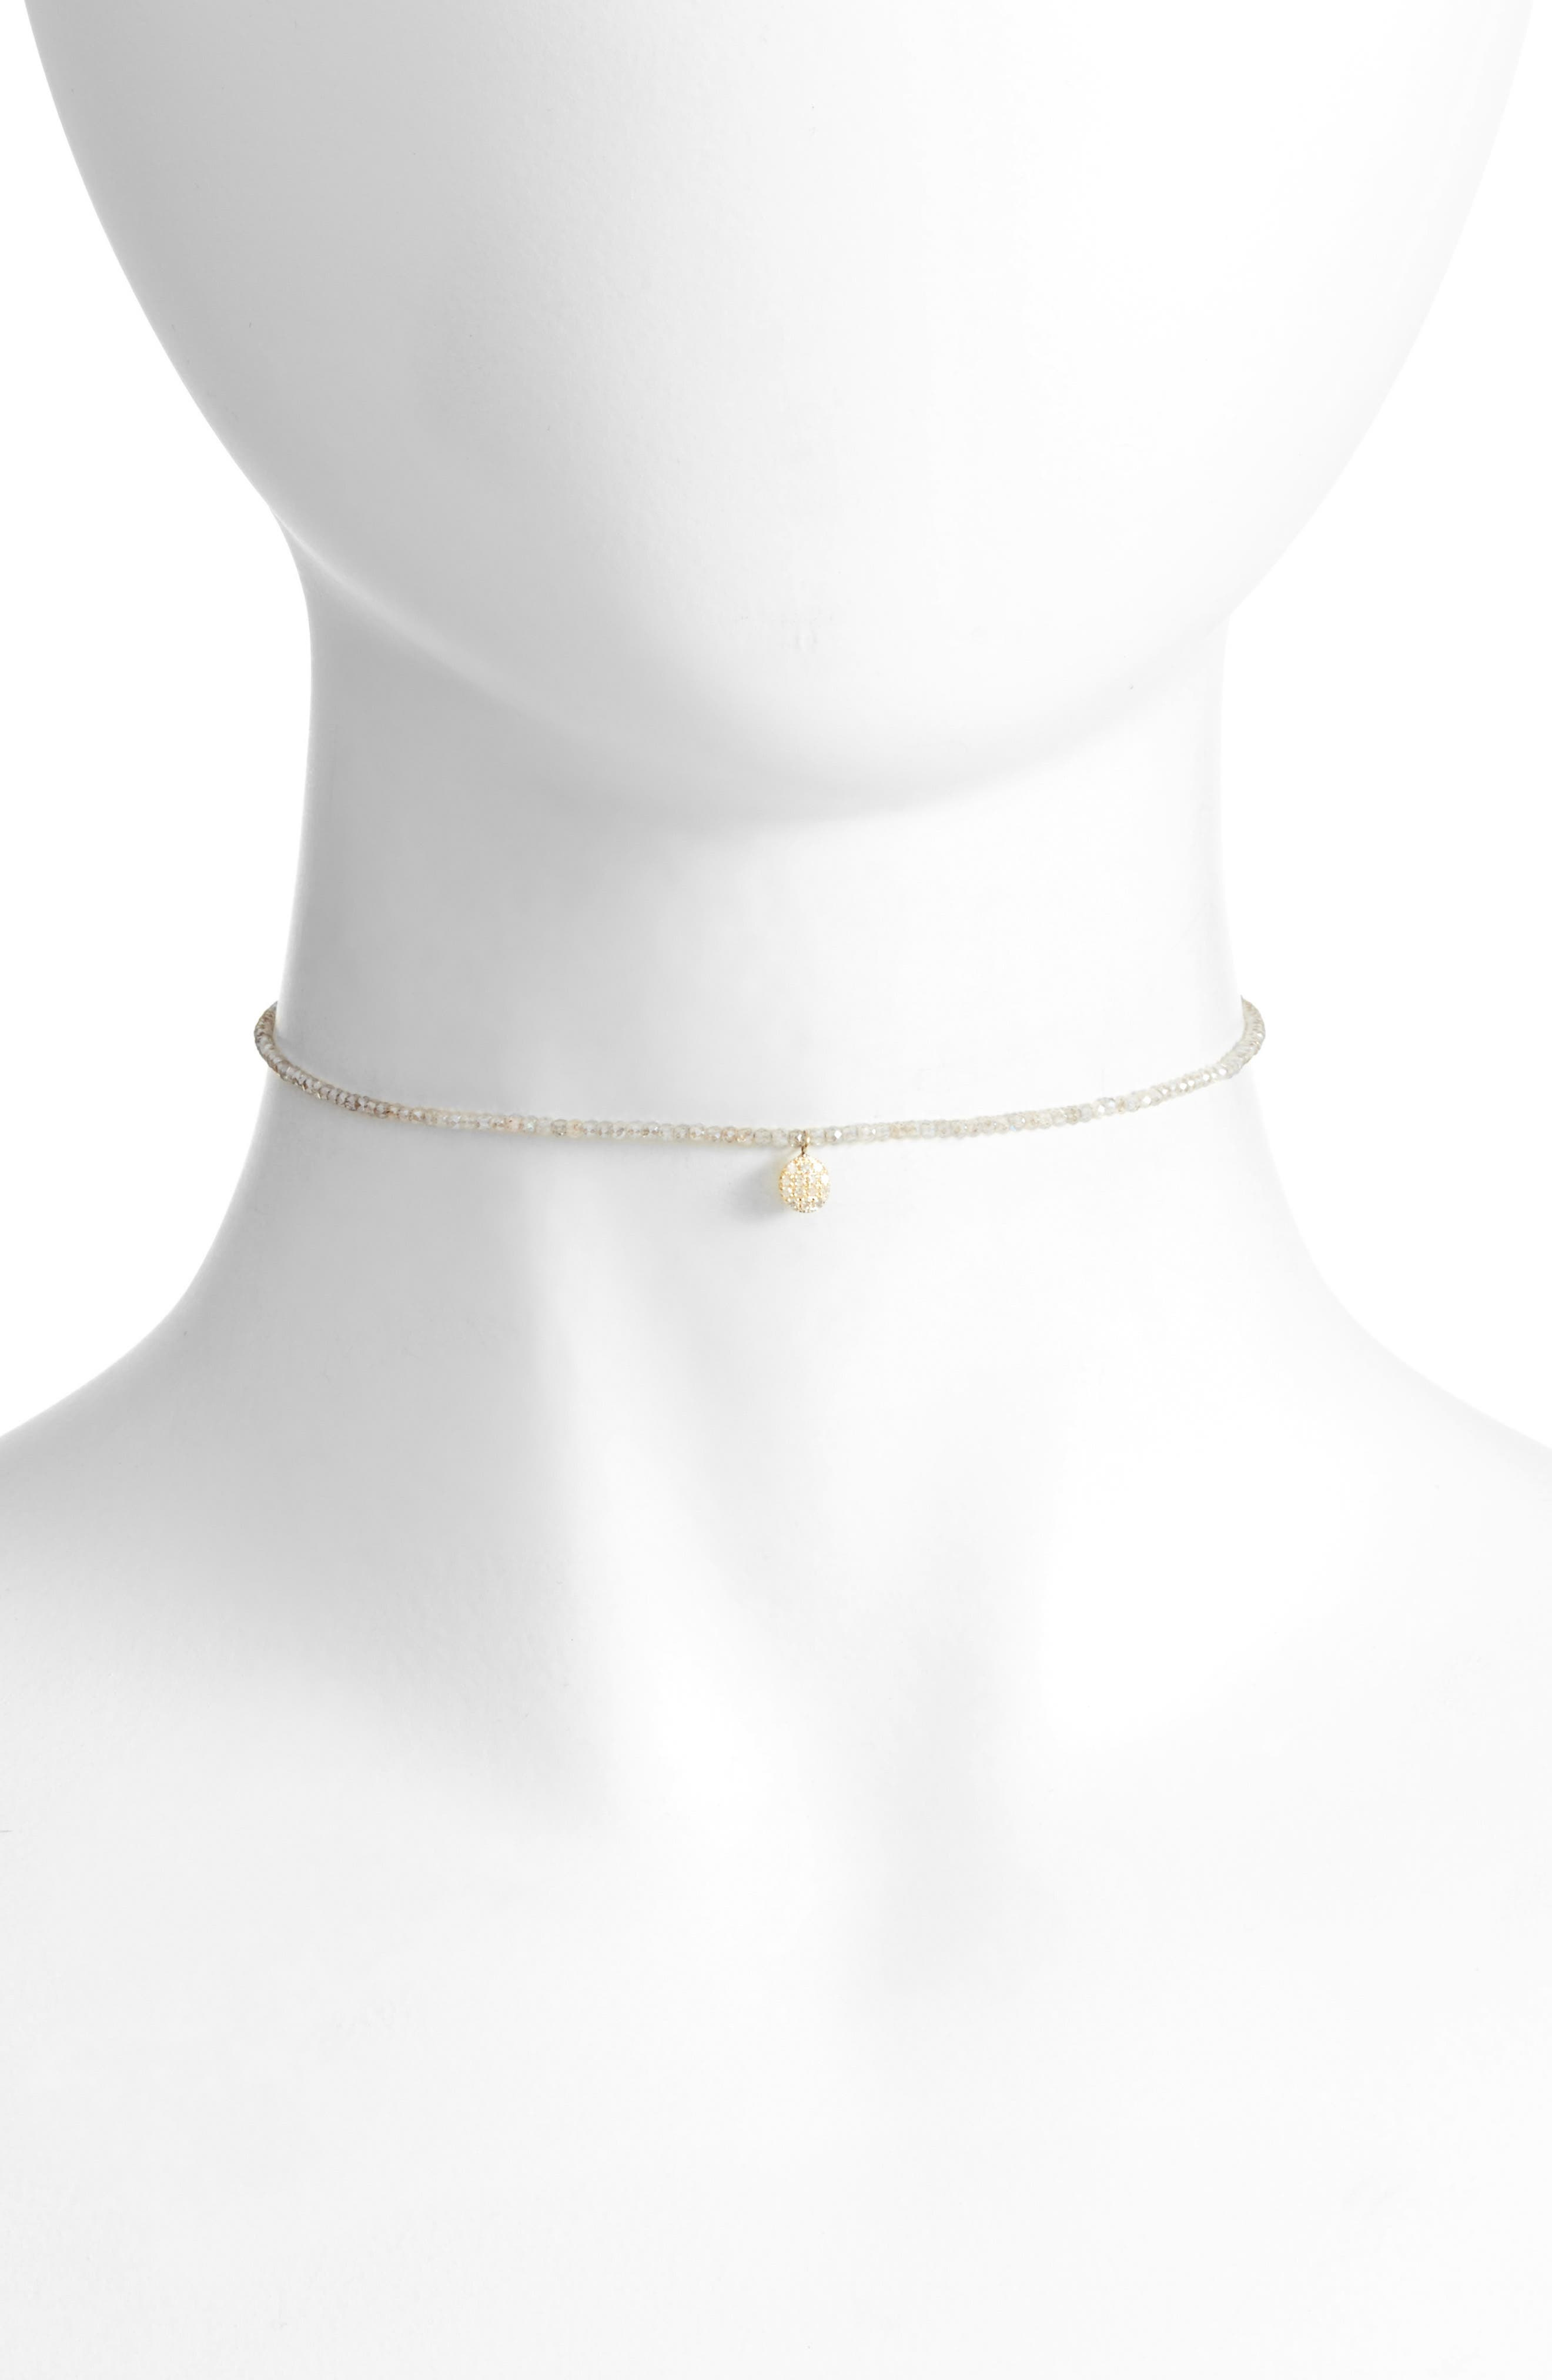 Diamond Charm Choker Necklace,                             Main thumbnail 1, color,                             YELLOW GOLD